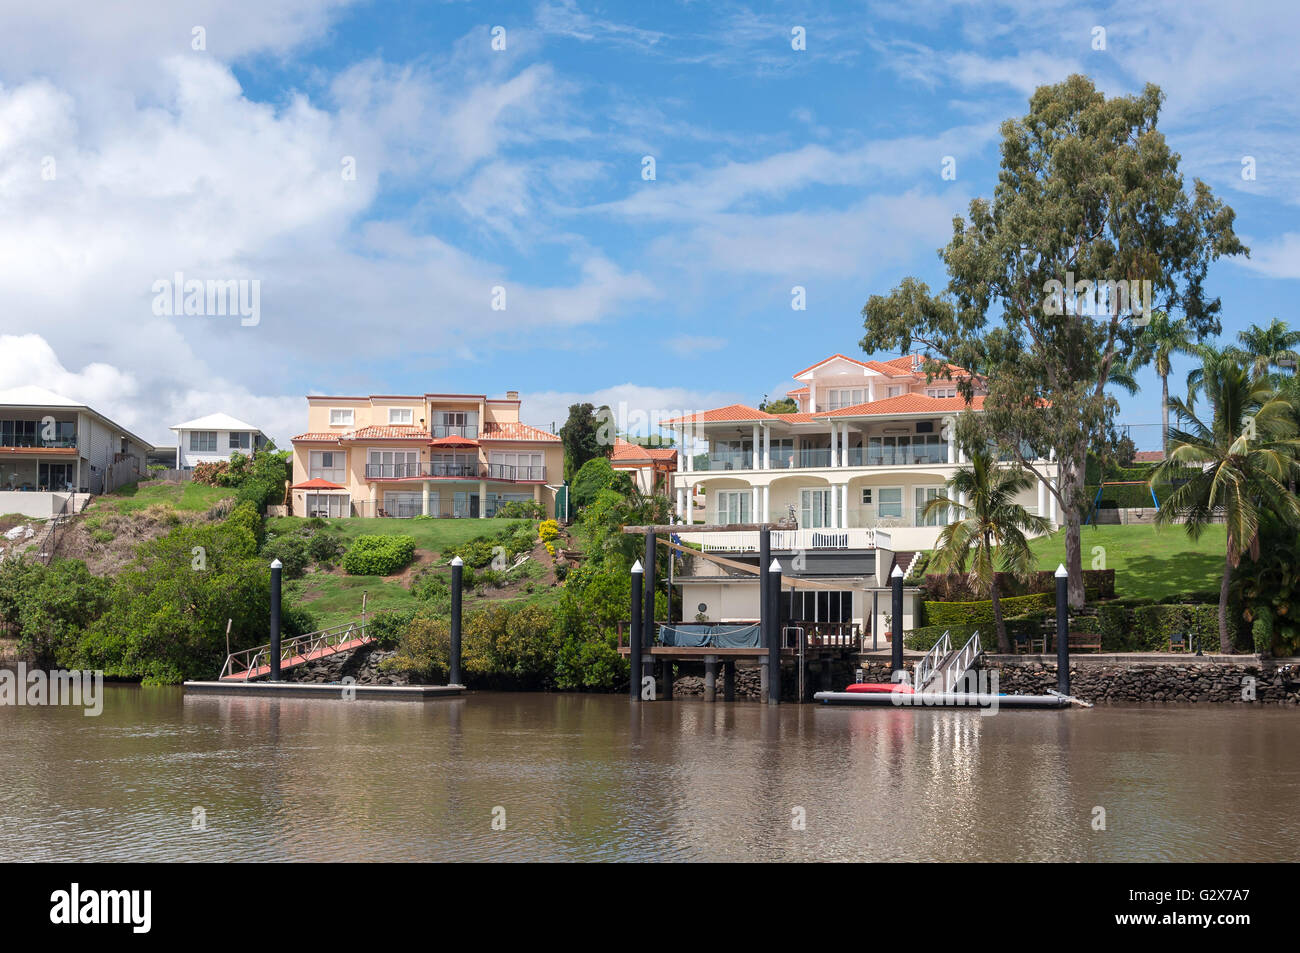 Luxury riverside houses on Brisbane River, Fig Tree Pocket, Brisbane, Queensland, Australia - Stock Image